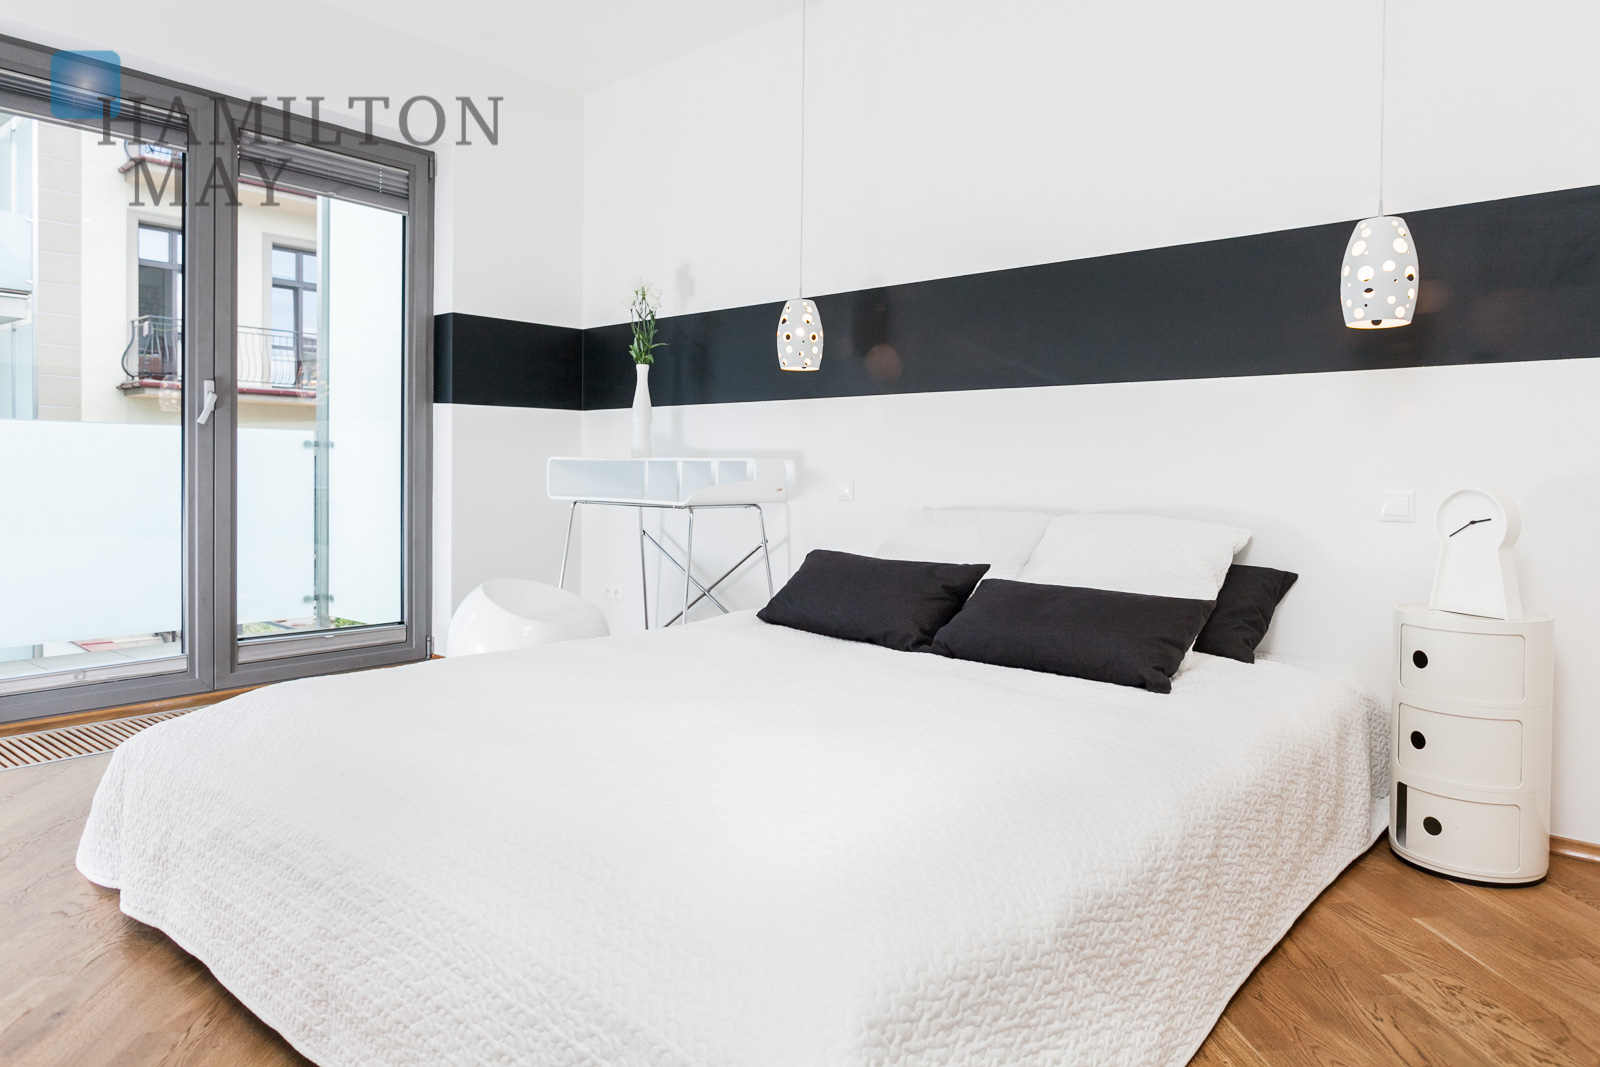 Exclusive 'Tokyo' apartment in a modern, discreet townhouse in the Kazimierz district Krakow for sale